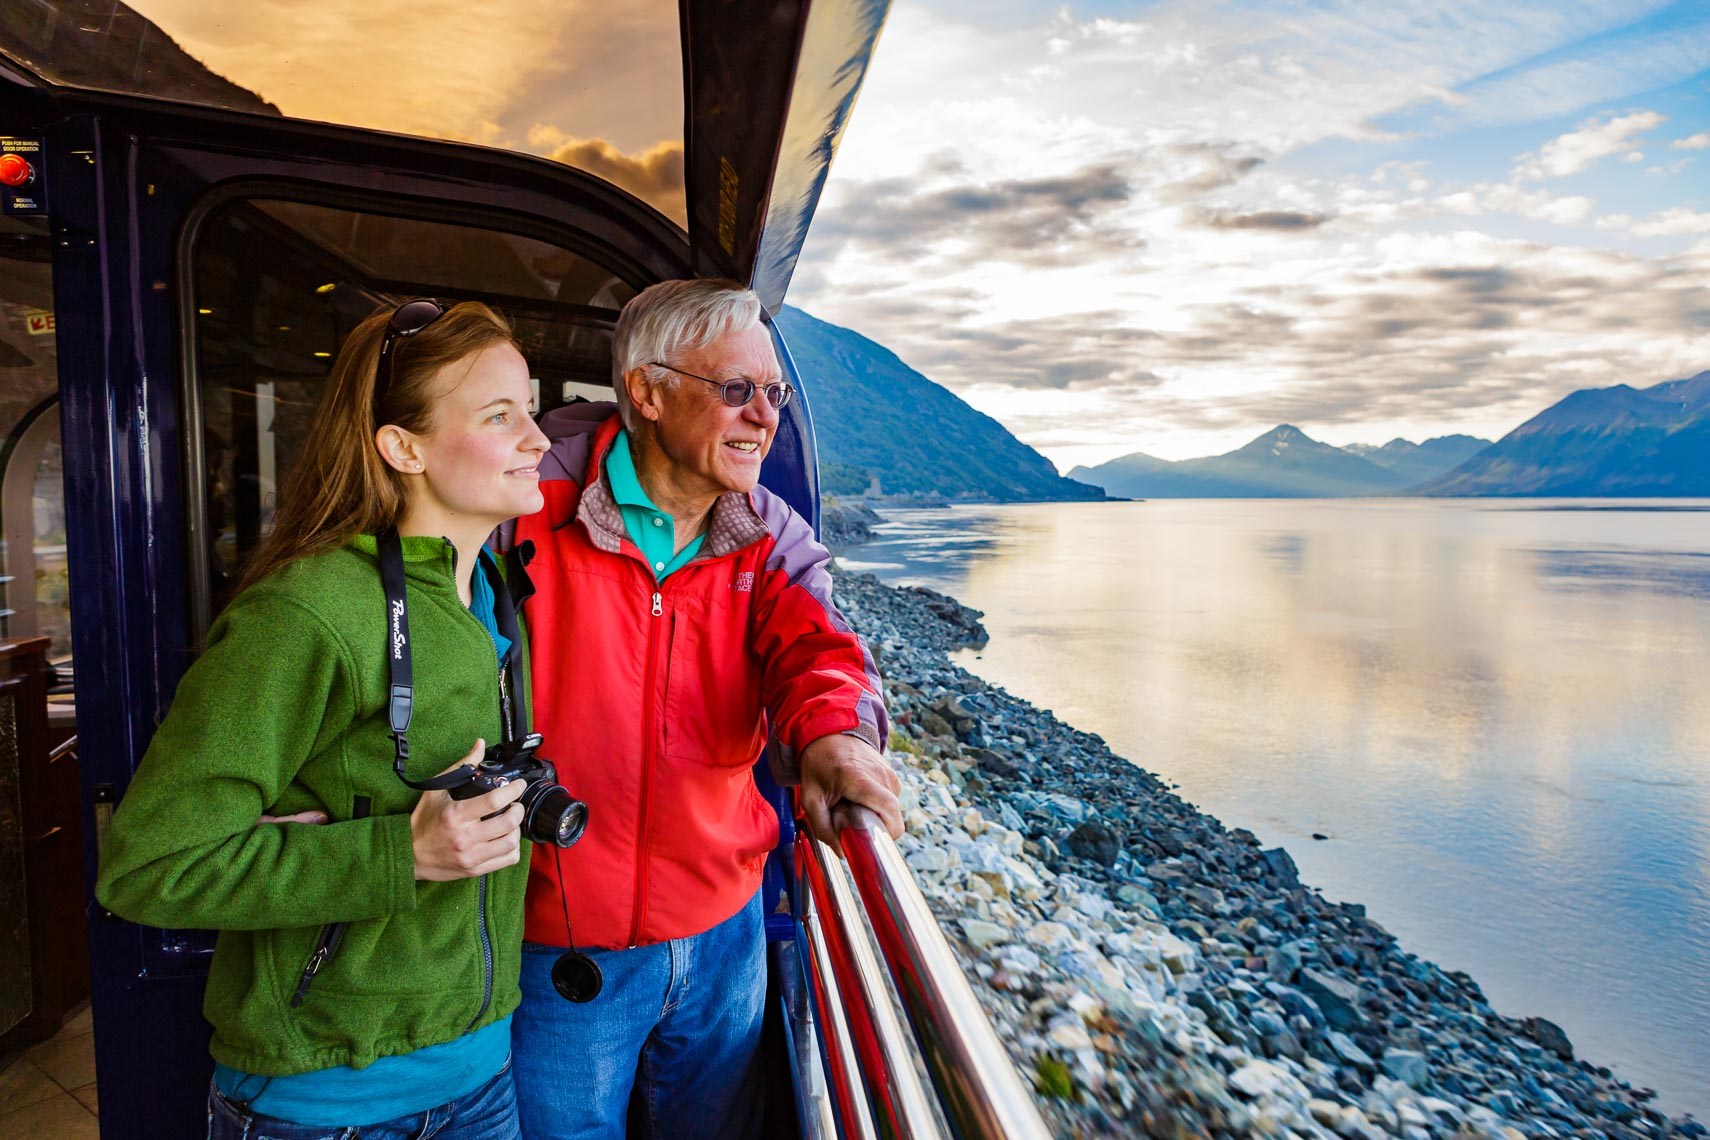 Alaska Railroad Passenger Travel | Photographer Michael DeYoung